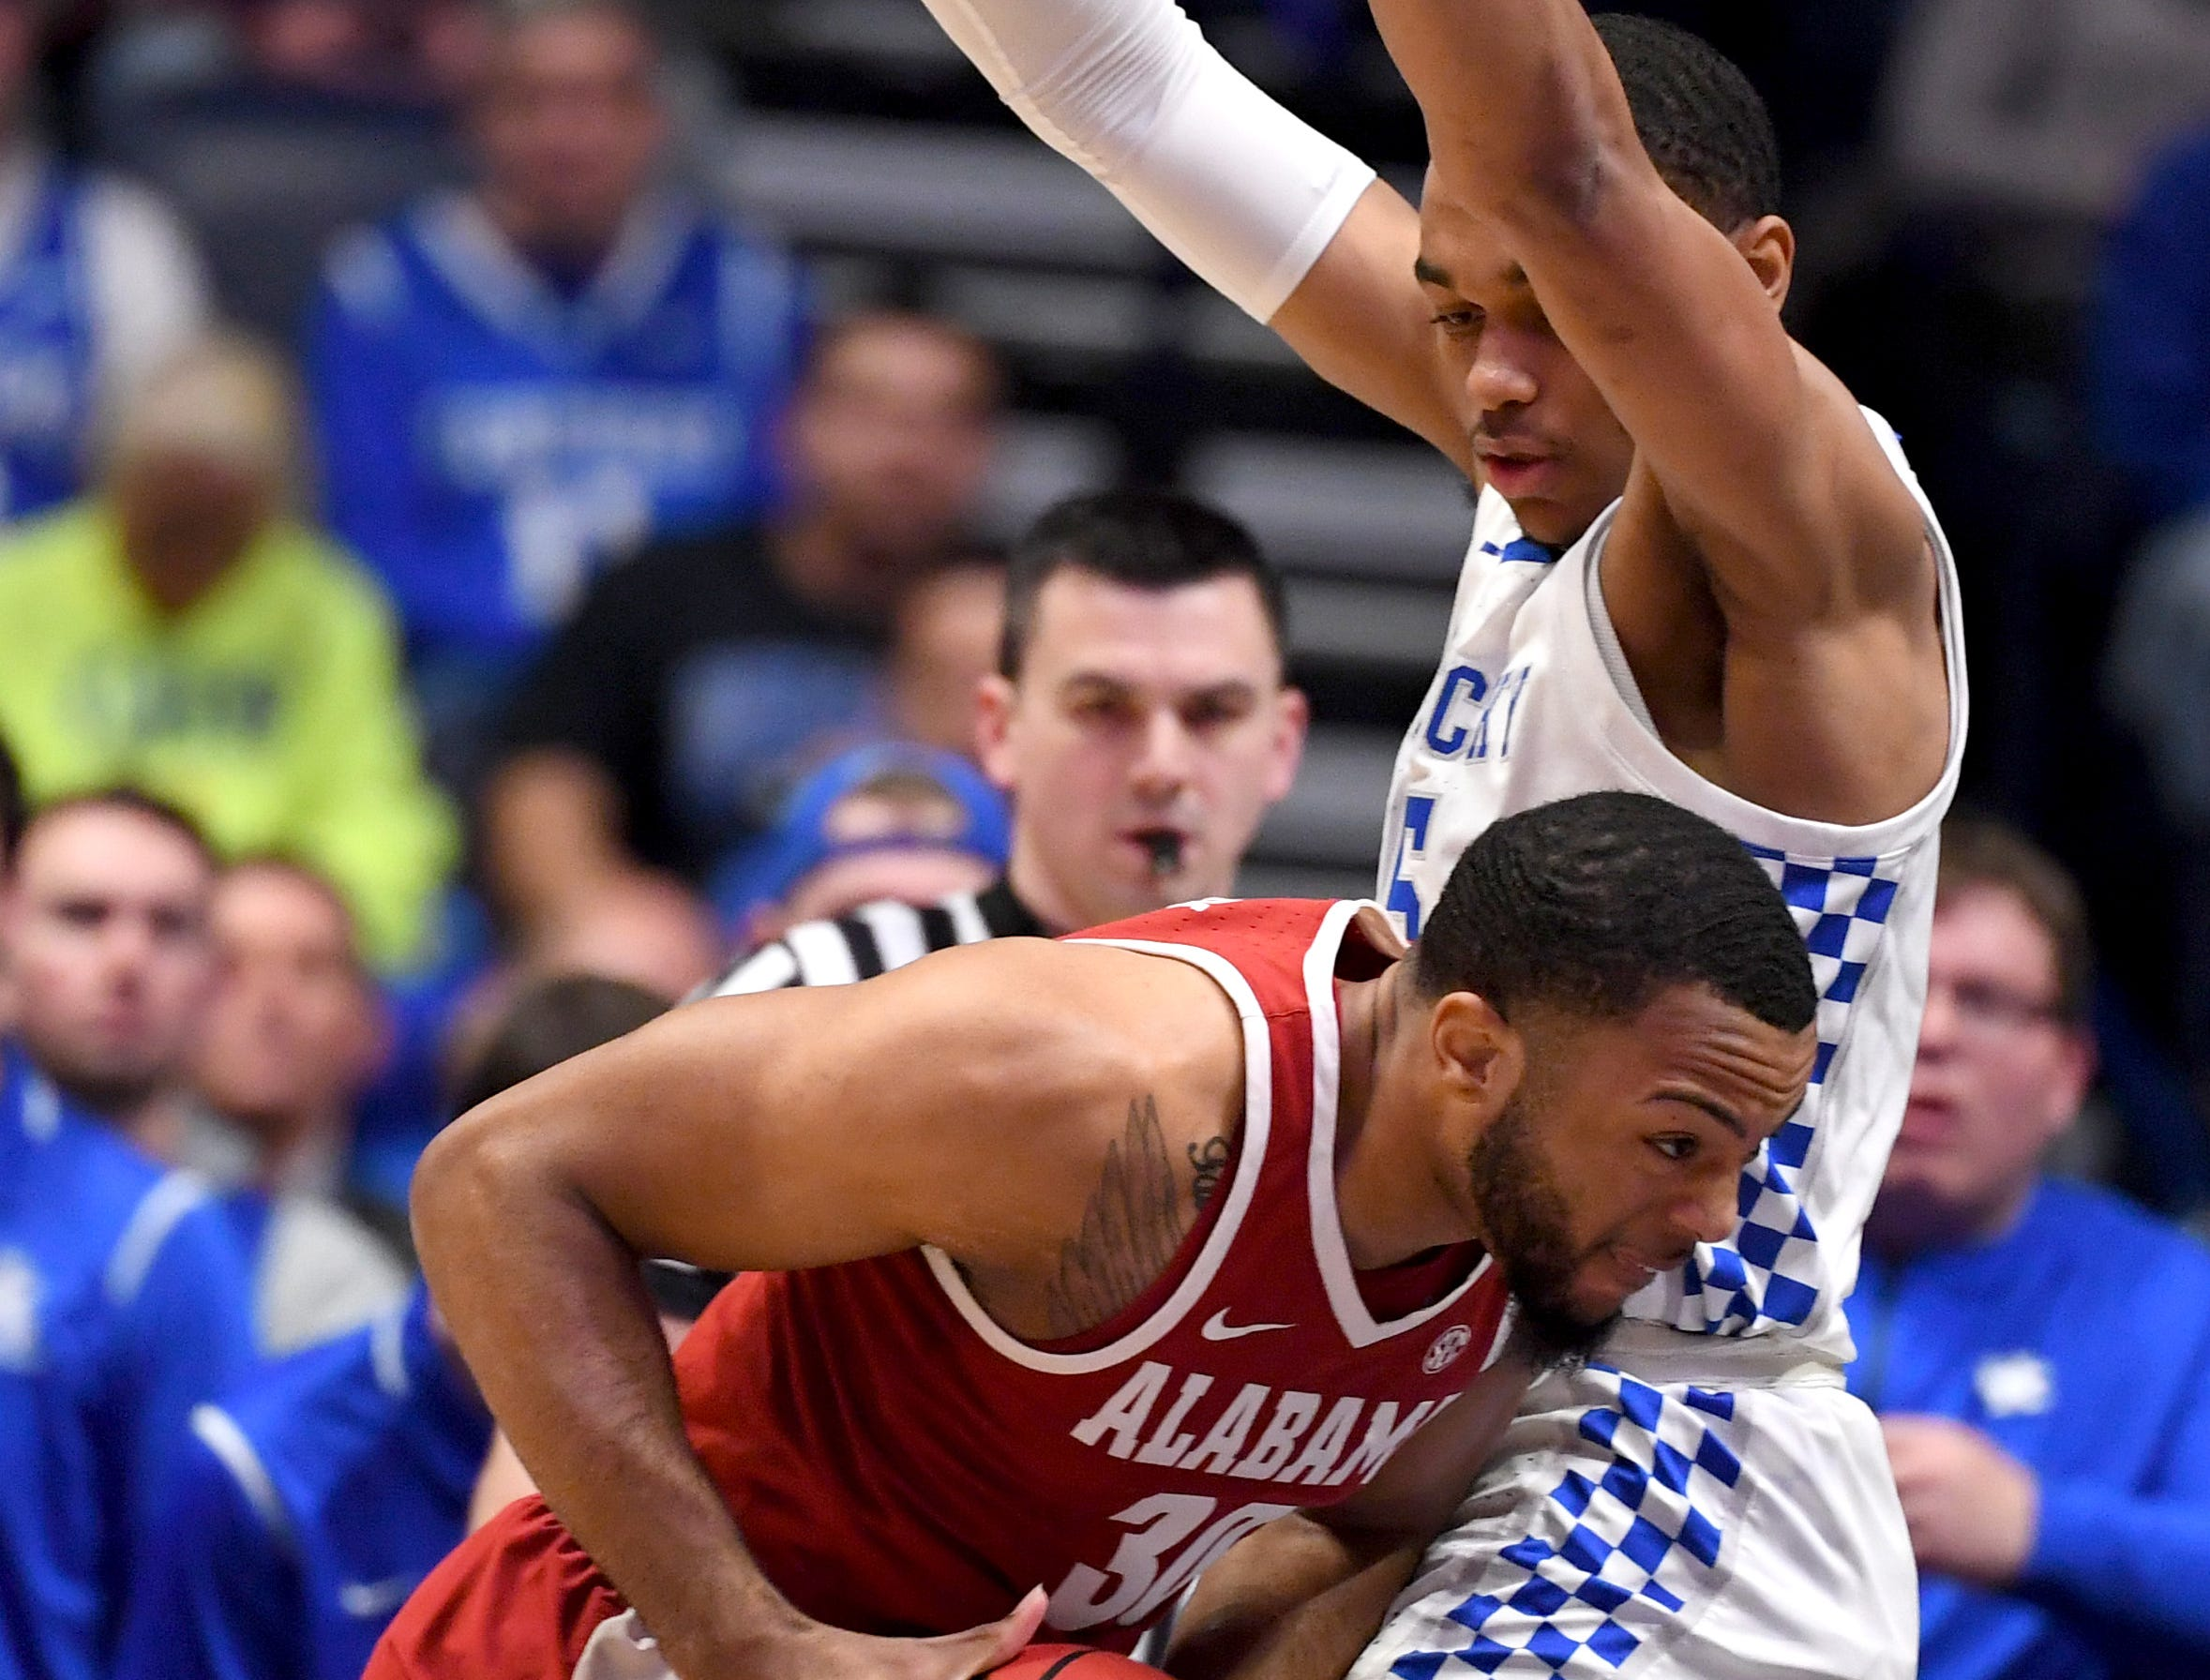 Mar 15, 2019; Nashville, TN, USA; Alabama Crimson Tide forward Galin Smith (30) works against Kentucky Wildcats forward PJ Washington (25) during the first half of the SEC conference tournament at Bridgestone Arena. Mandatory Credit: Christopher Hanewinckel-USA TODAY Sports